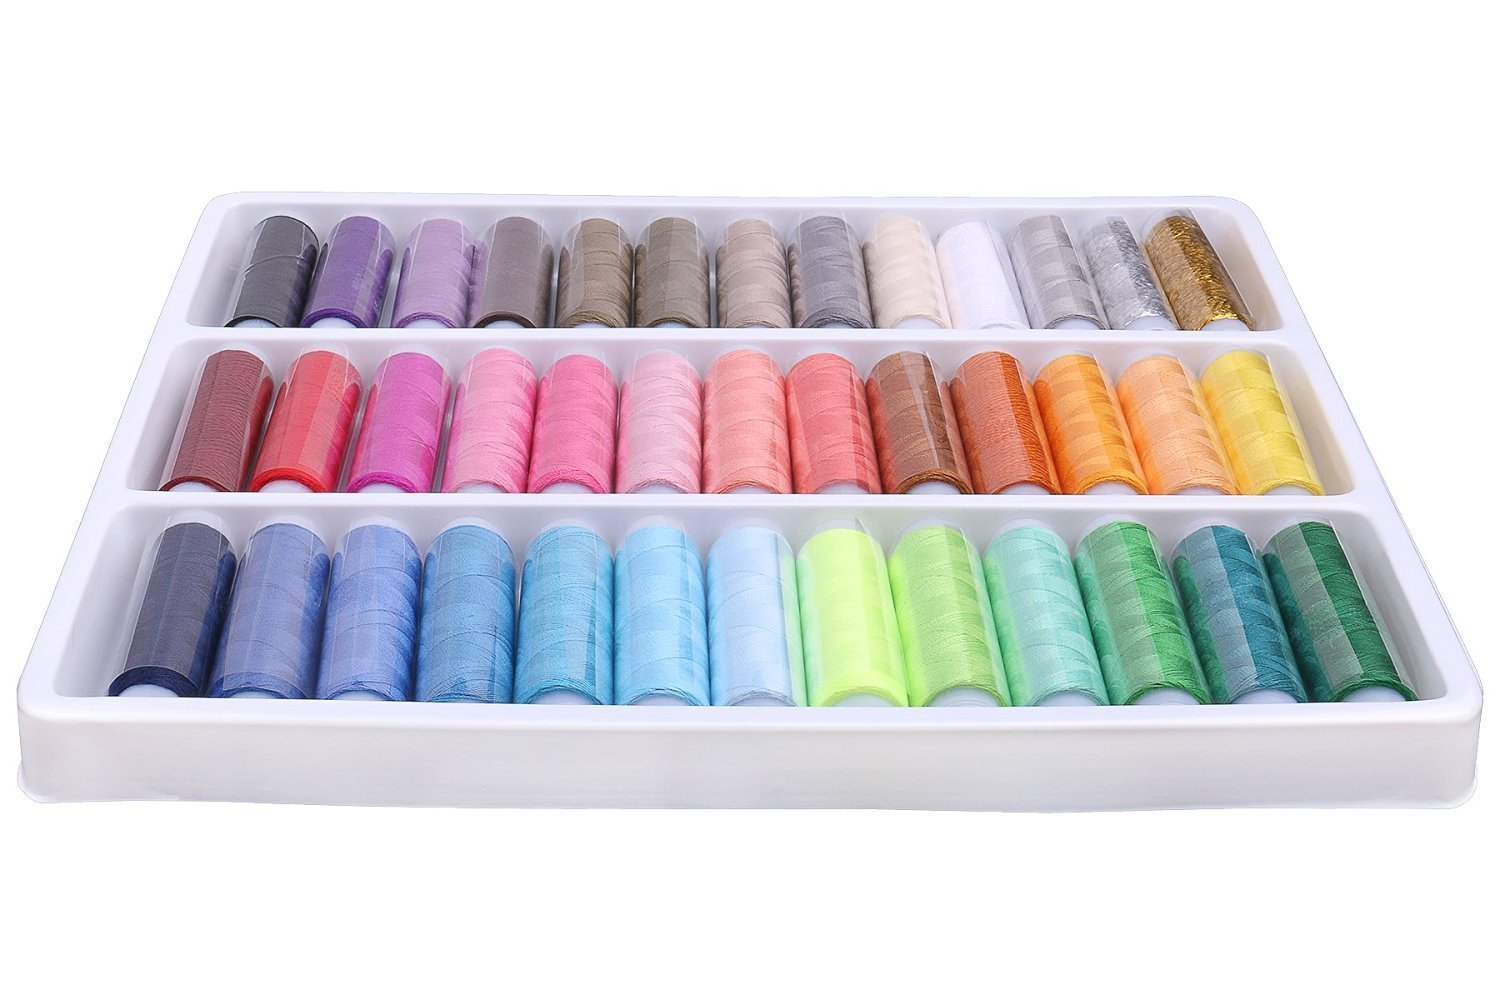 TILY Pack Of 39 Spools Rainbow Assorted Colour Colors Polyester Sewing Thread Box Kit Set Ideal For Quilting Stitching / Hand Sewing / Machine Sewing